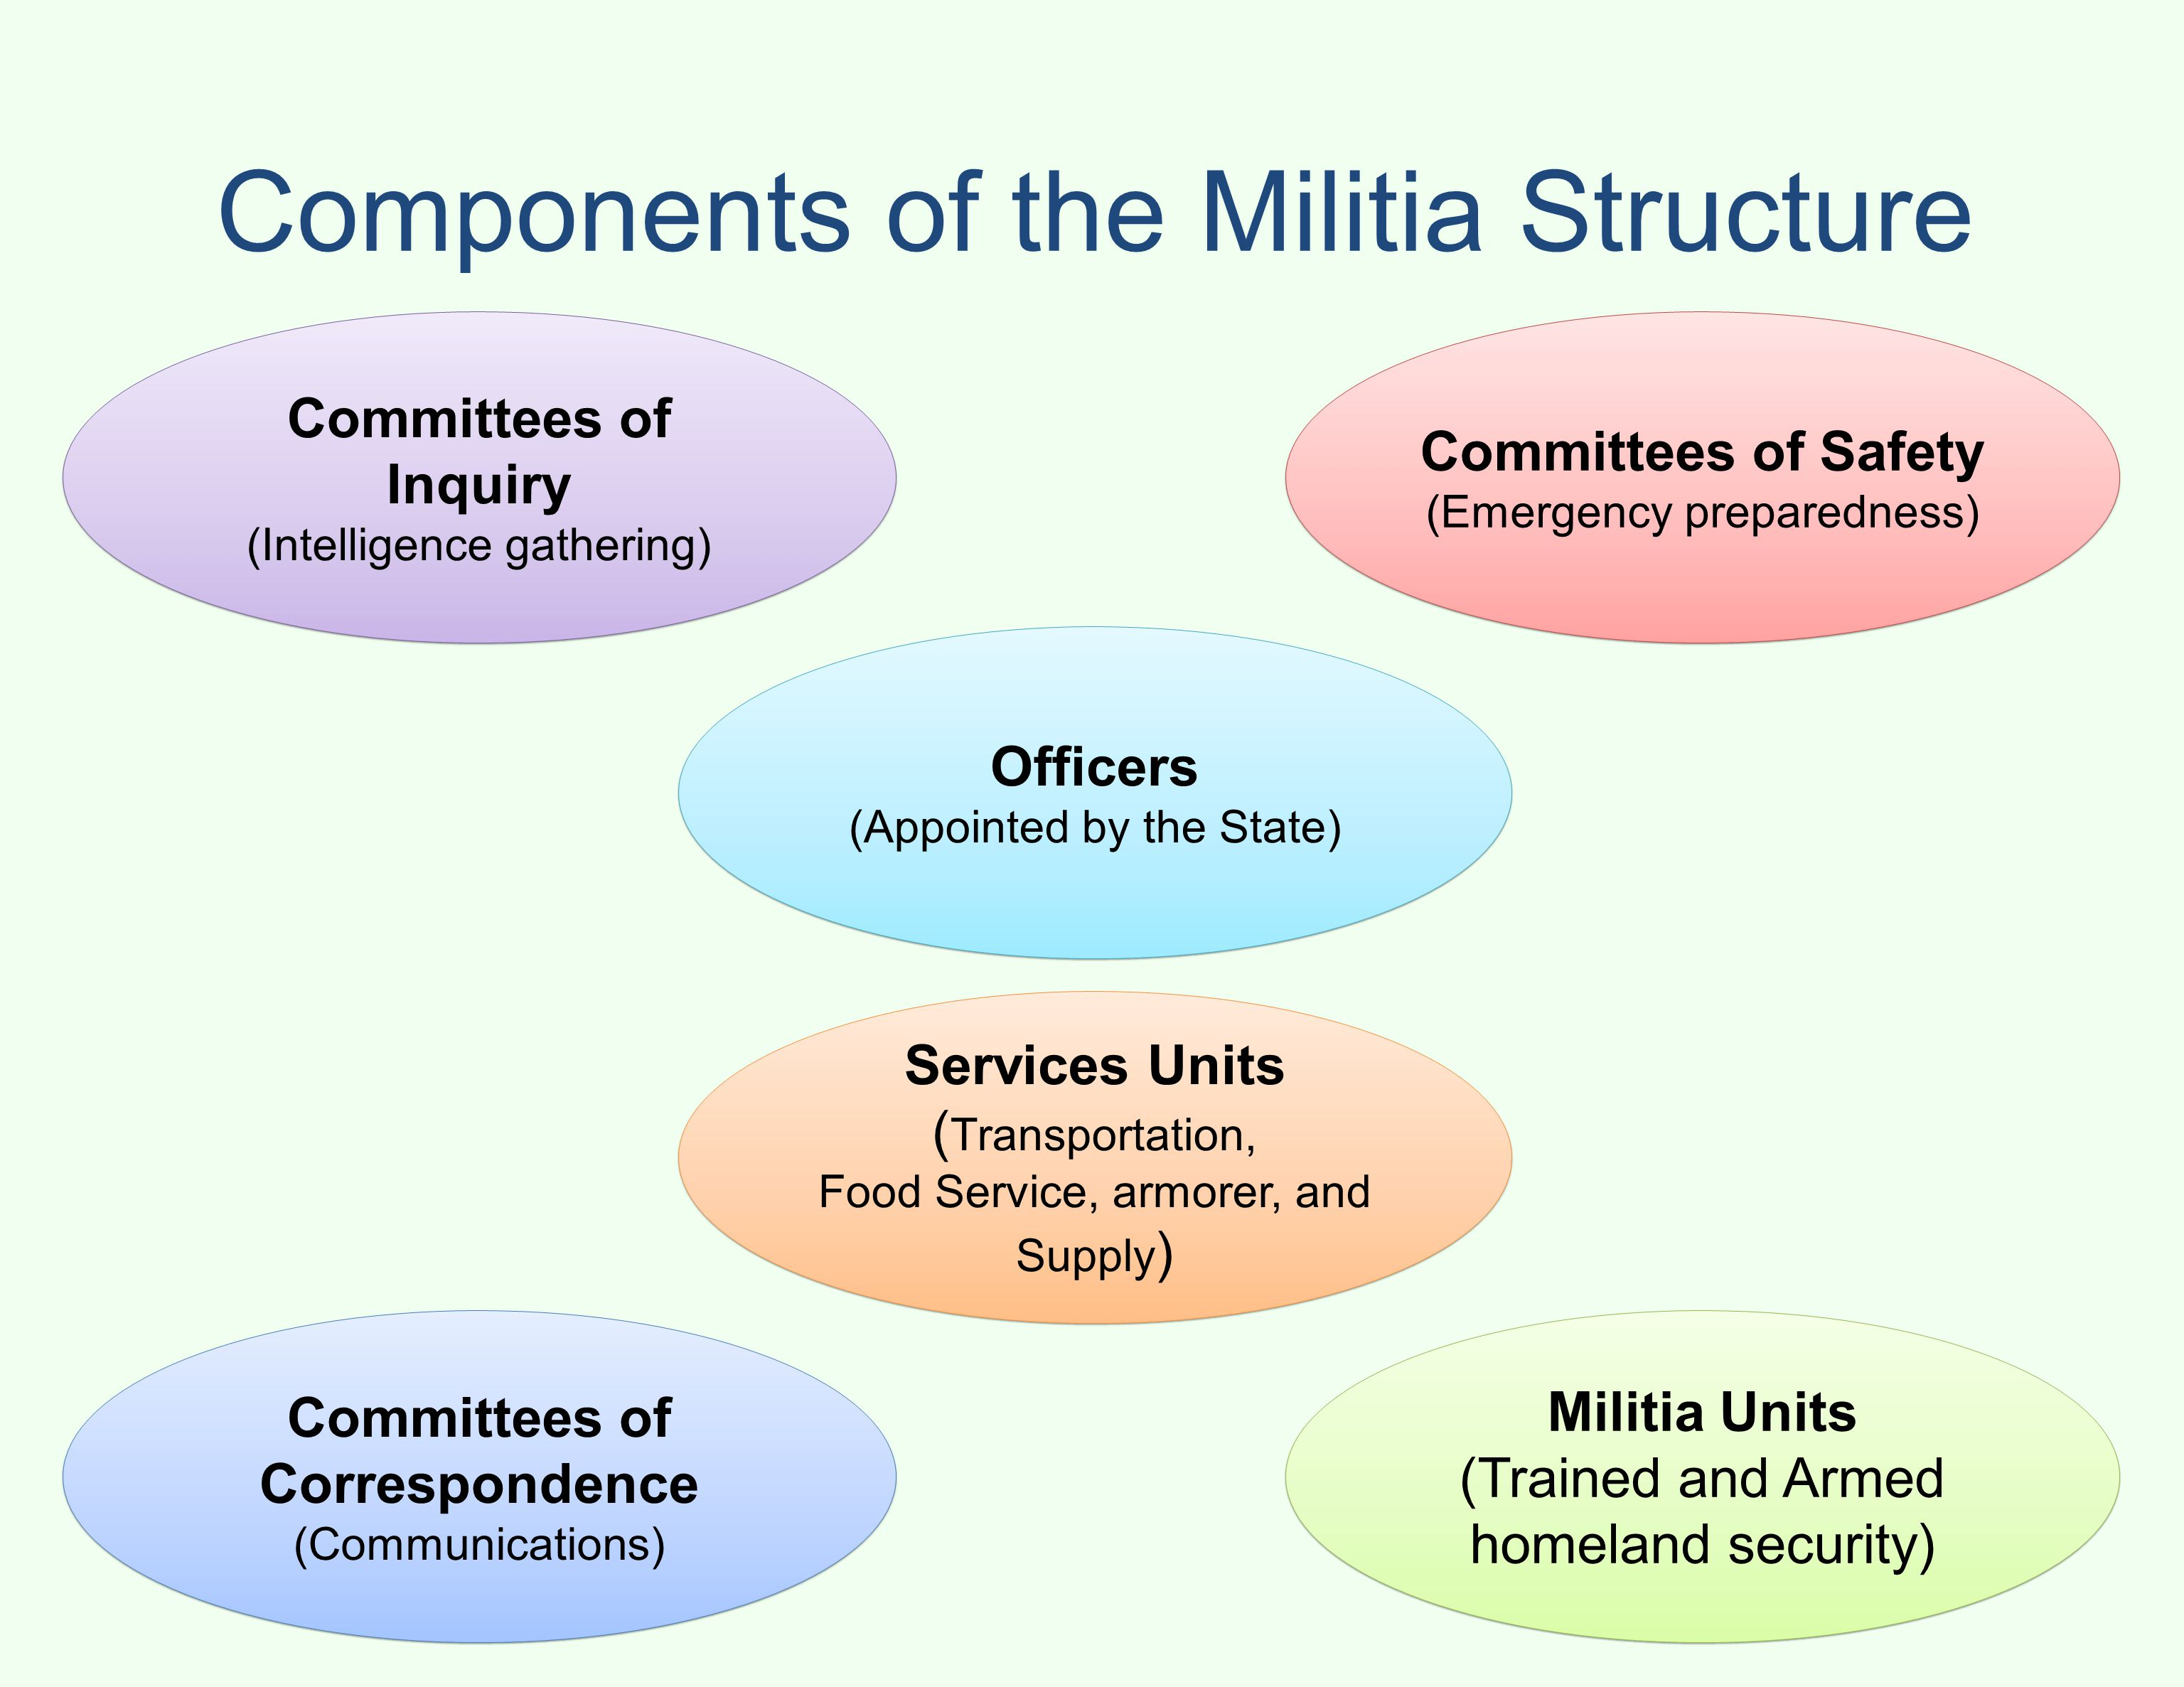 Components of the Militia Structure Committees of Inquiry (Intelligence gathering) Committees of Correspondence (Communications) Committees of Safety (Emergency preparedness) Militia Units (Trained and Armed homeland security) Services Units ( Transportation, Food Service, armorer, and Supply ) Officers (Appointed by the State)